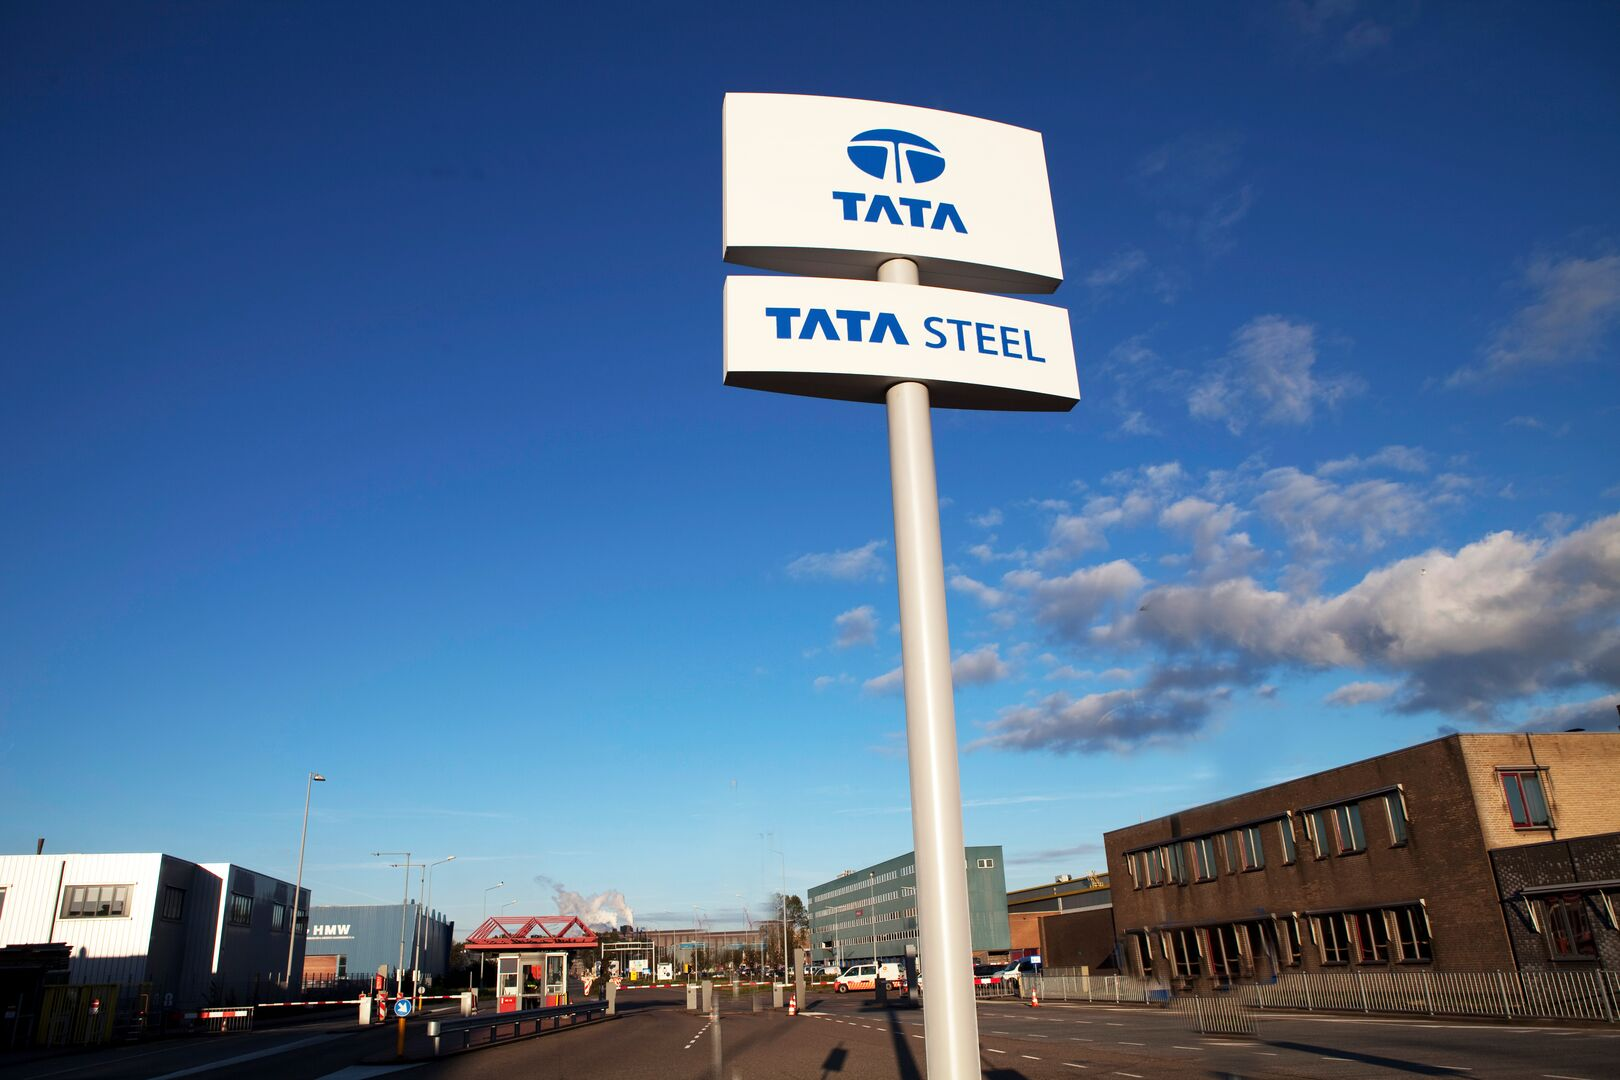 Tata Steel Career Locations